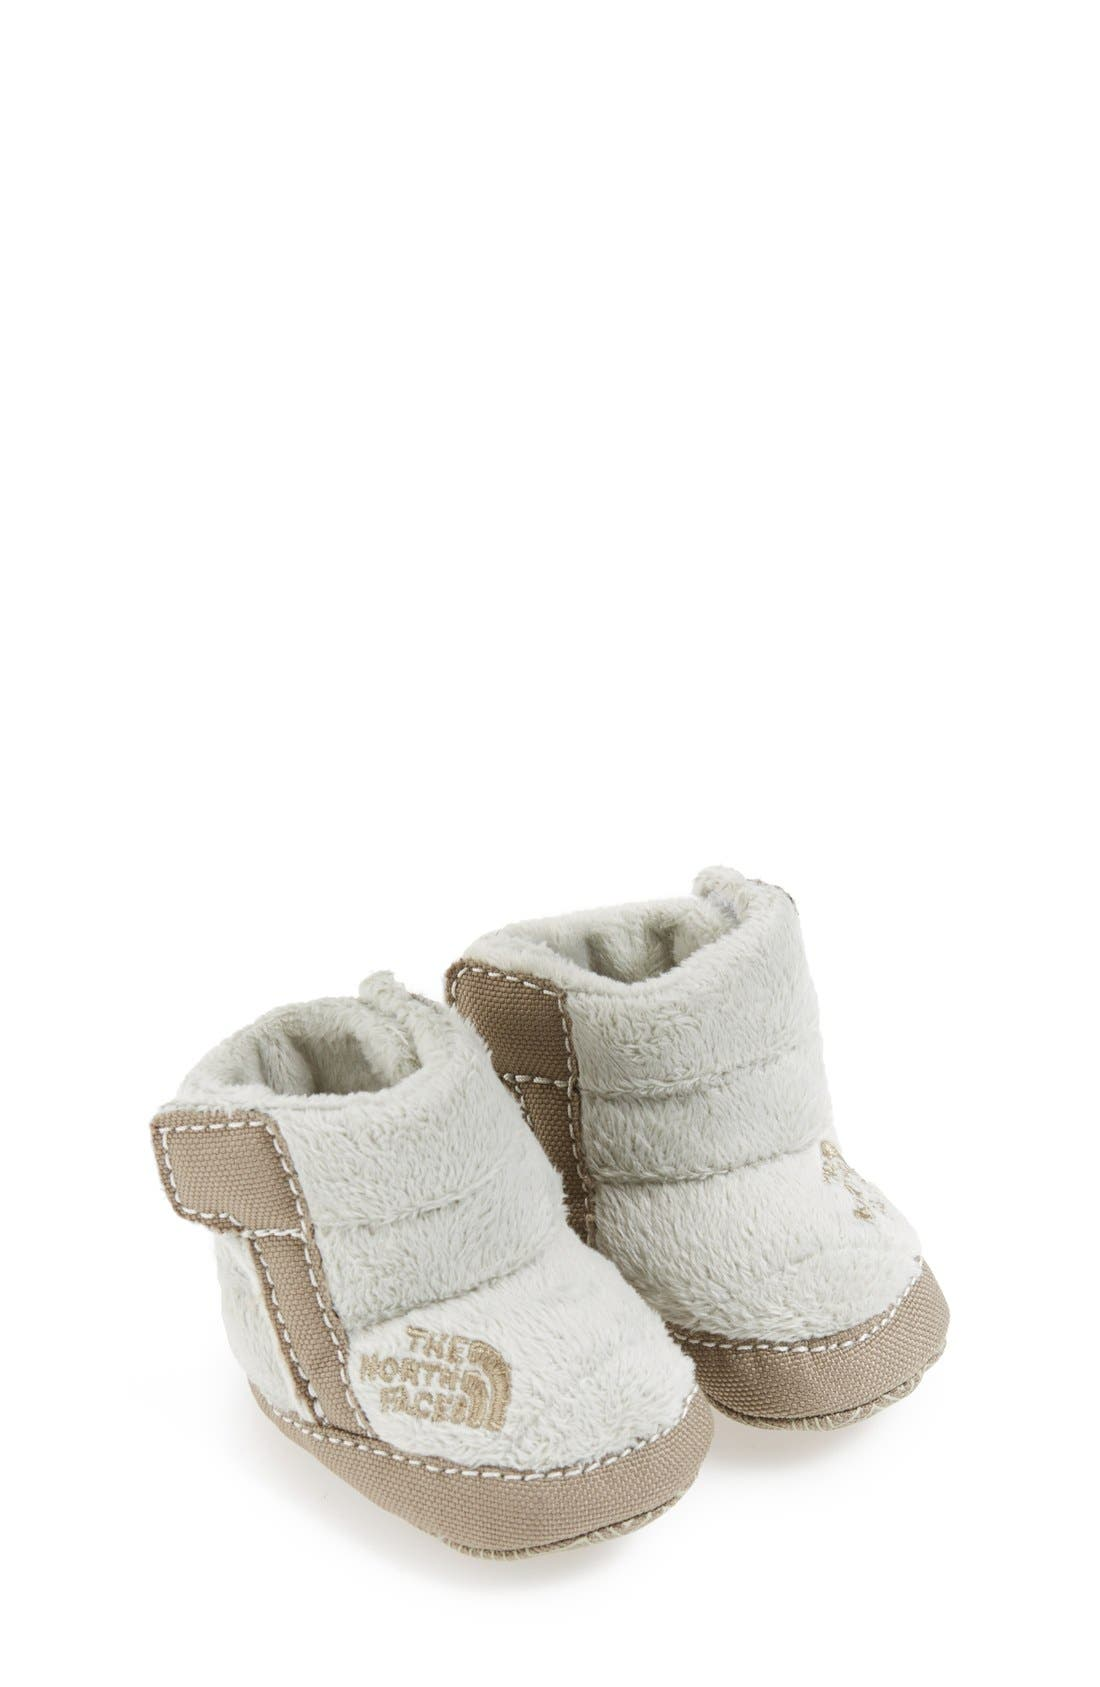 Main Image - The North Face Fleece Bootie (Baby & Walker)